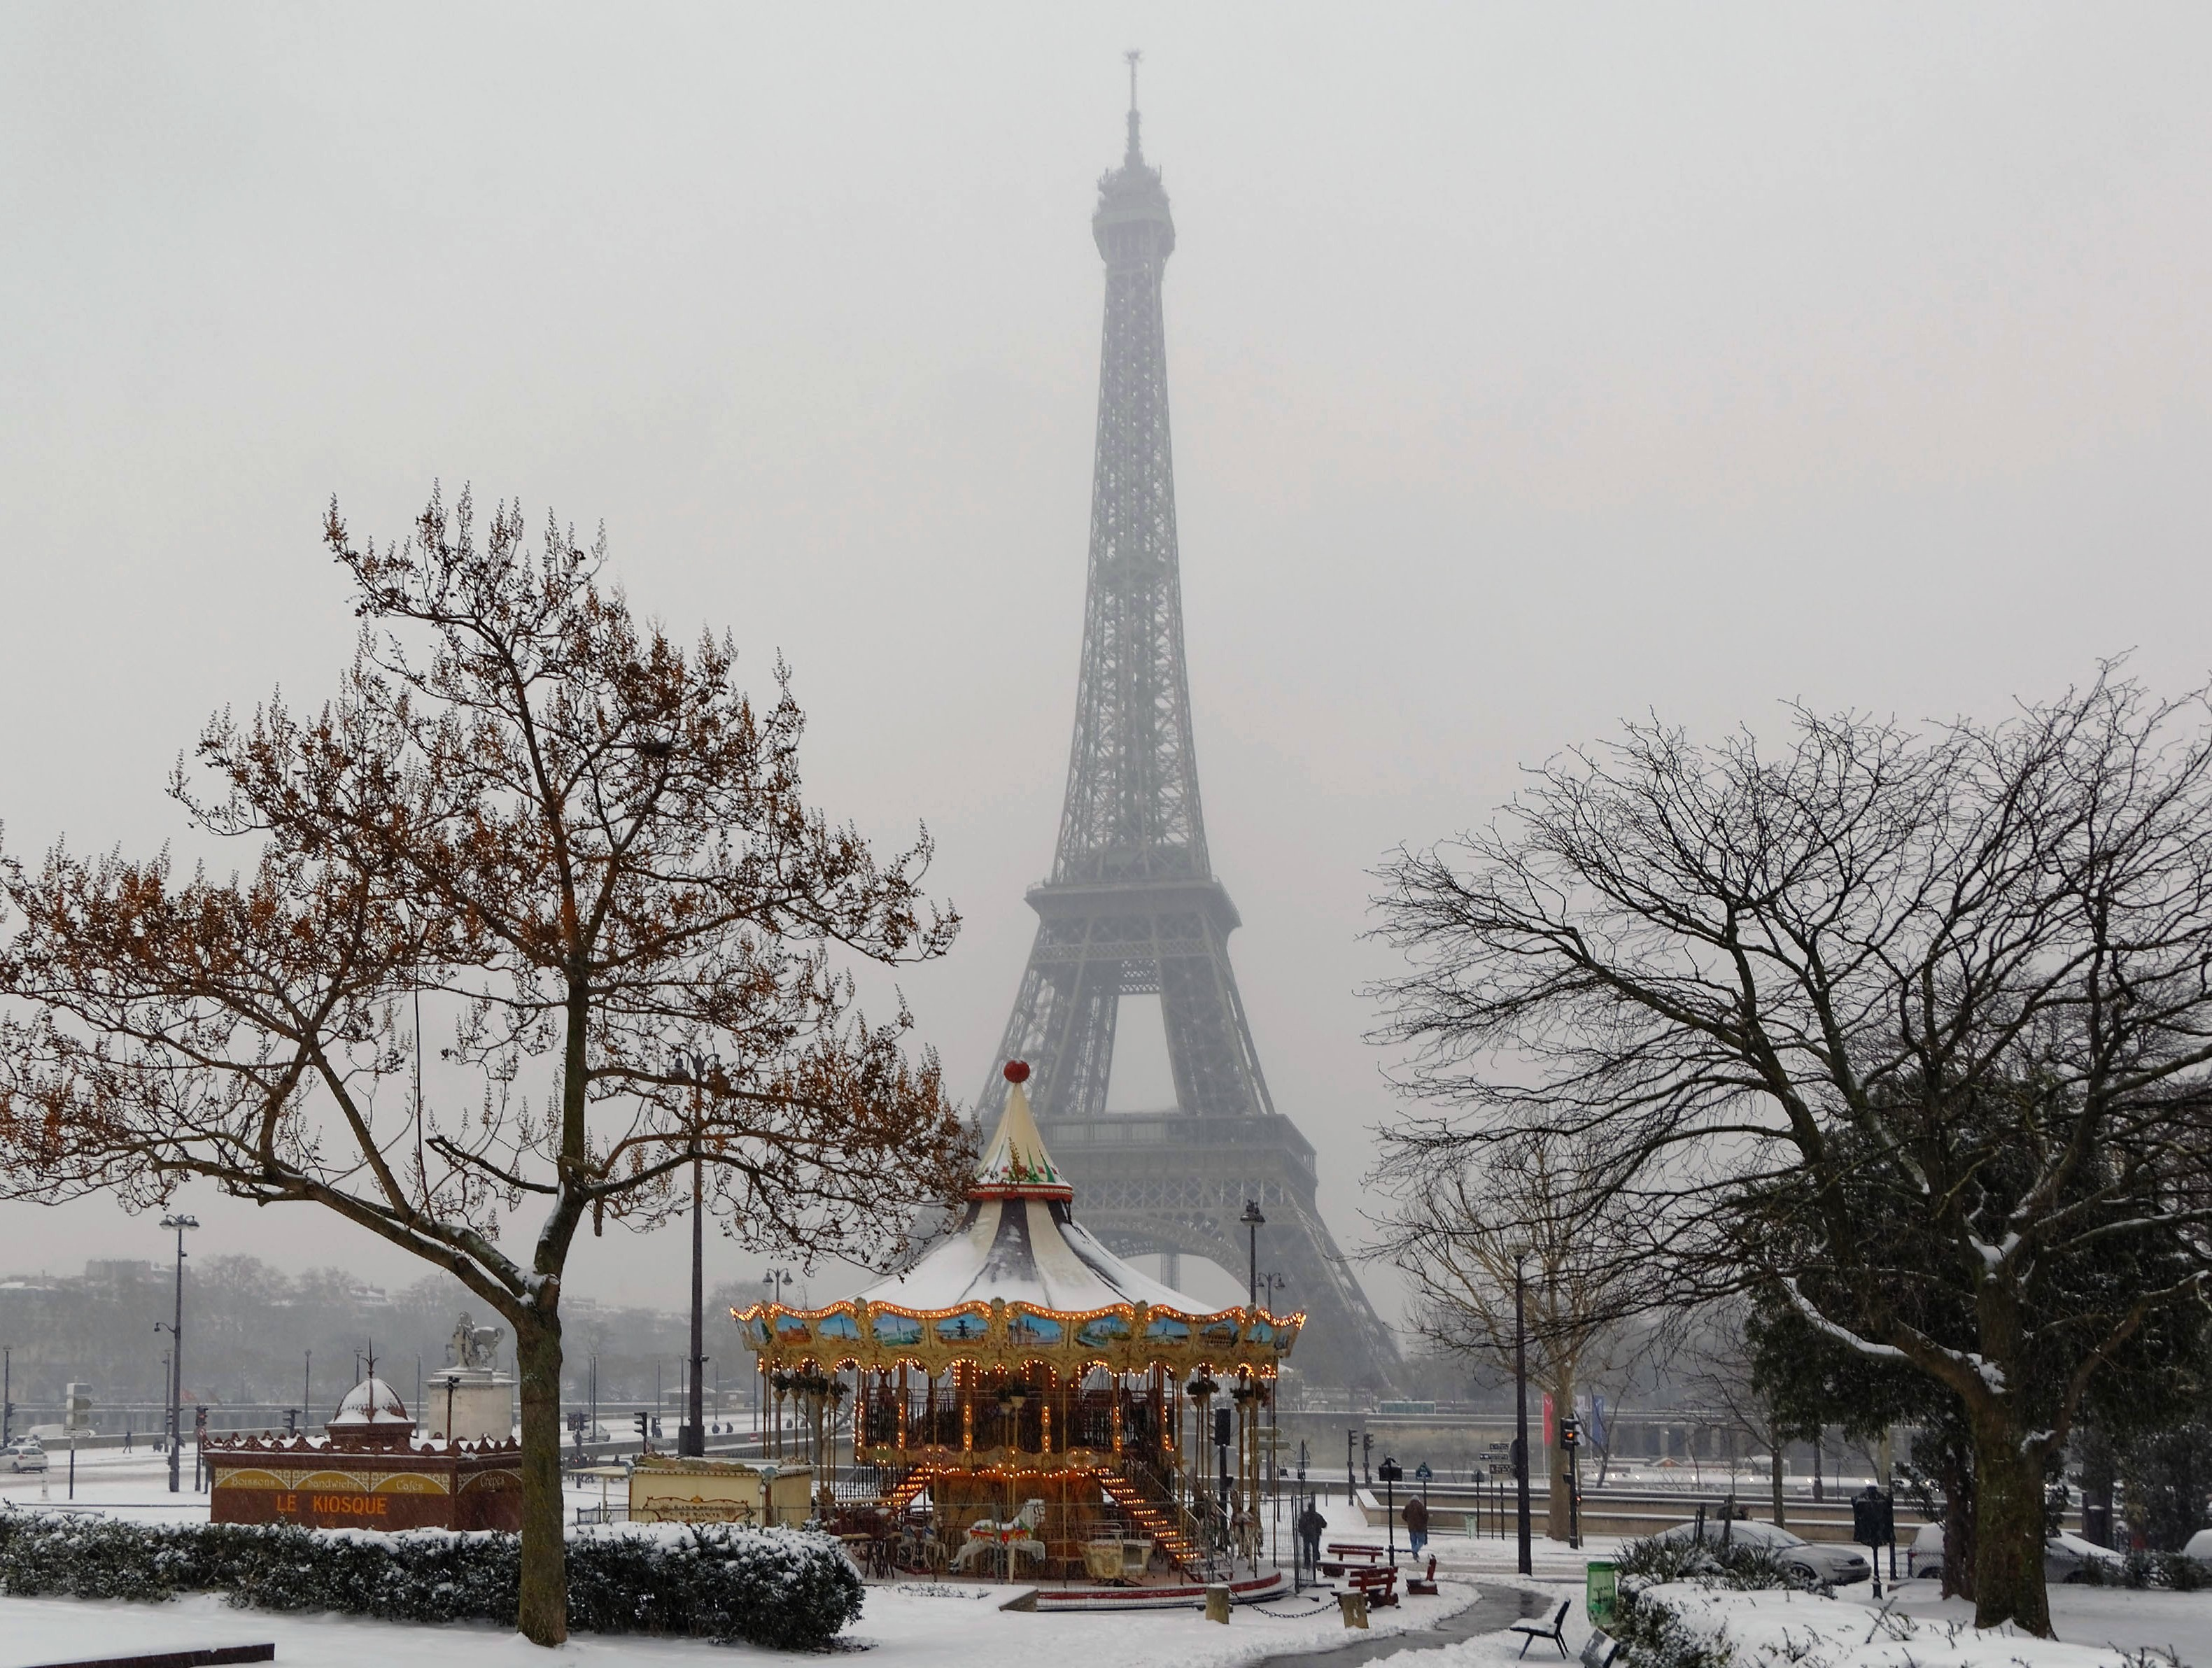 la tour eiffel sous la neige la tribu d 39 anaximandre des photos au fil des jours. Black Bedroom Furniture Sets. Home Design Ideas